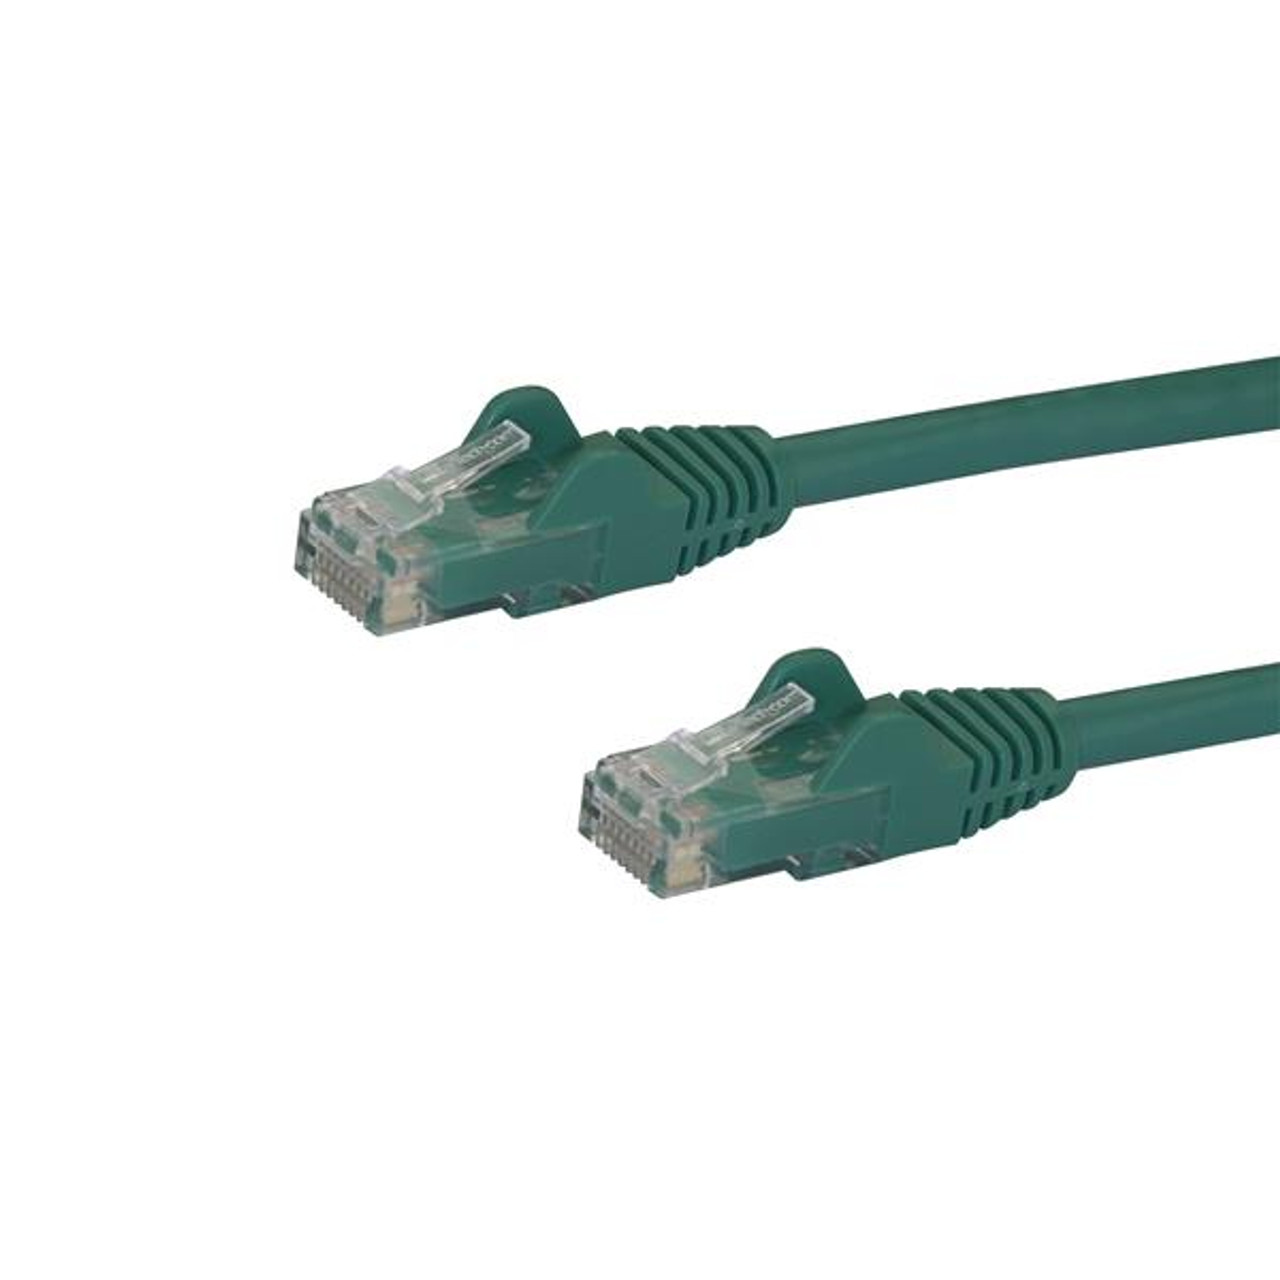 Image for StarTech 10m Cat6 Patch Cable with Snagless RJ45 Connectors - Green CX Computer Superstore